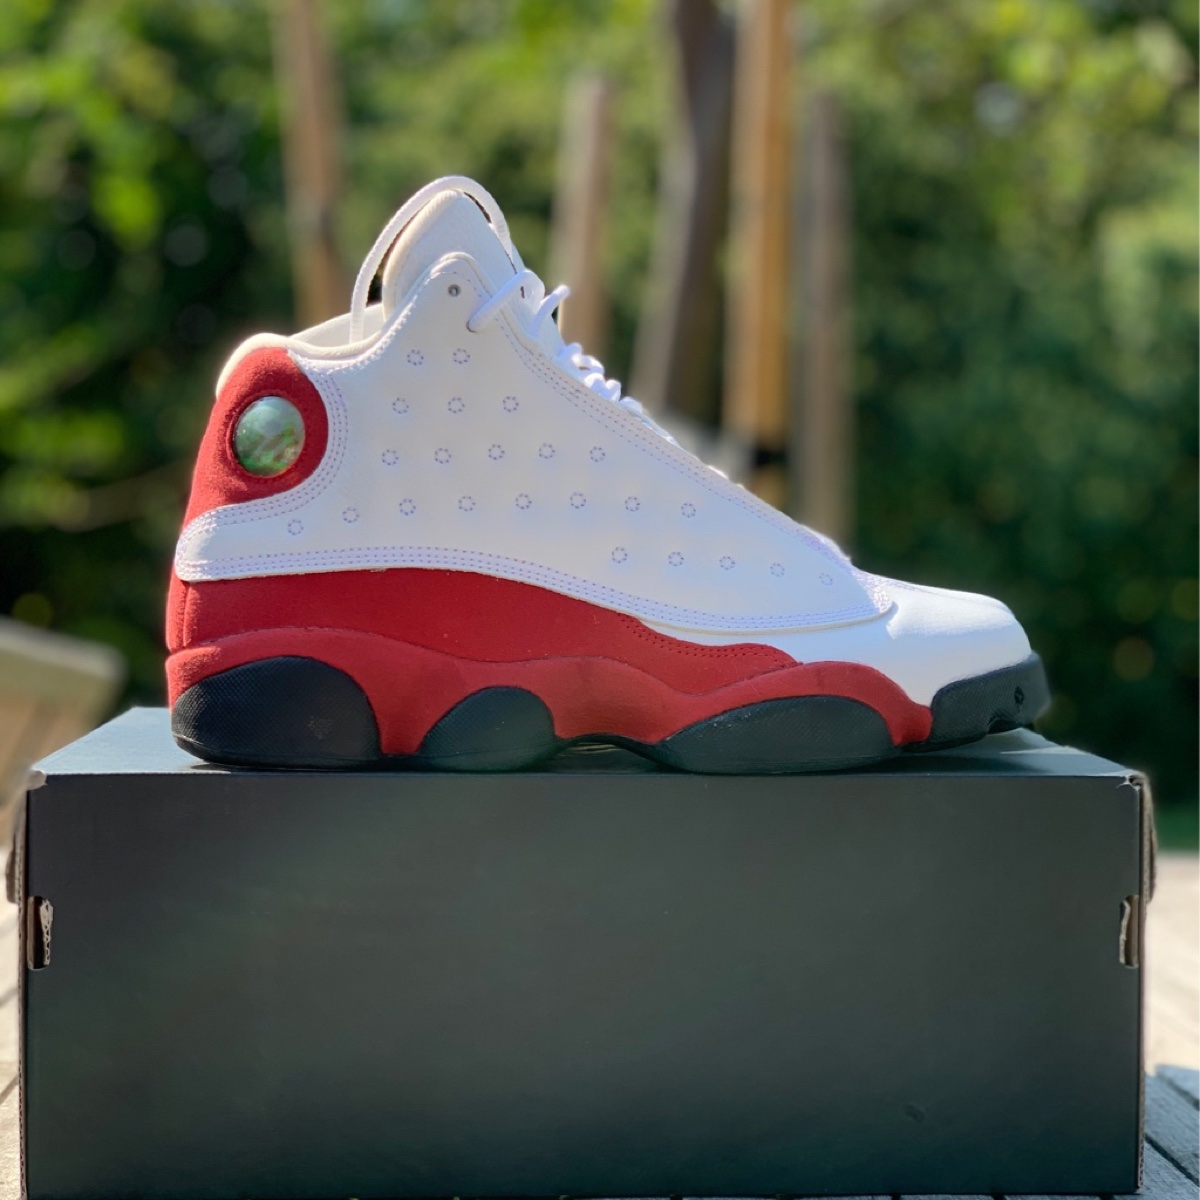 Jordan 13 Retro OG Chicago 2017 (GS)